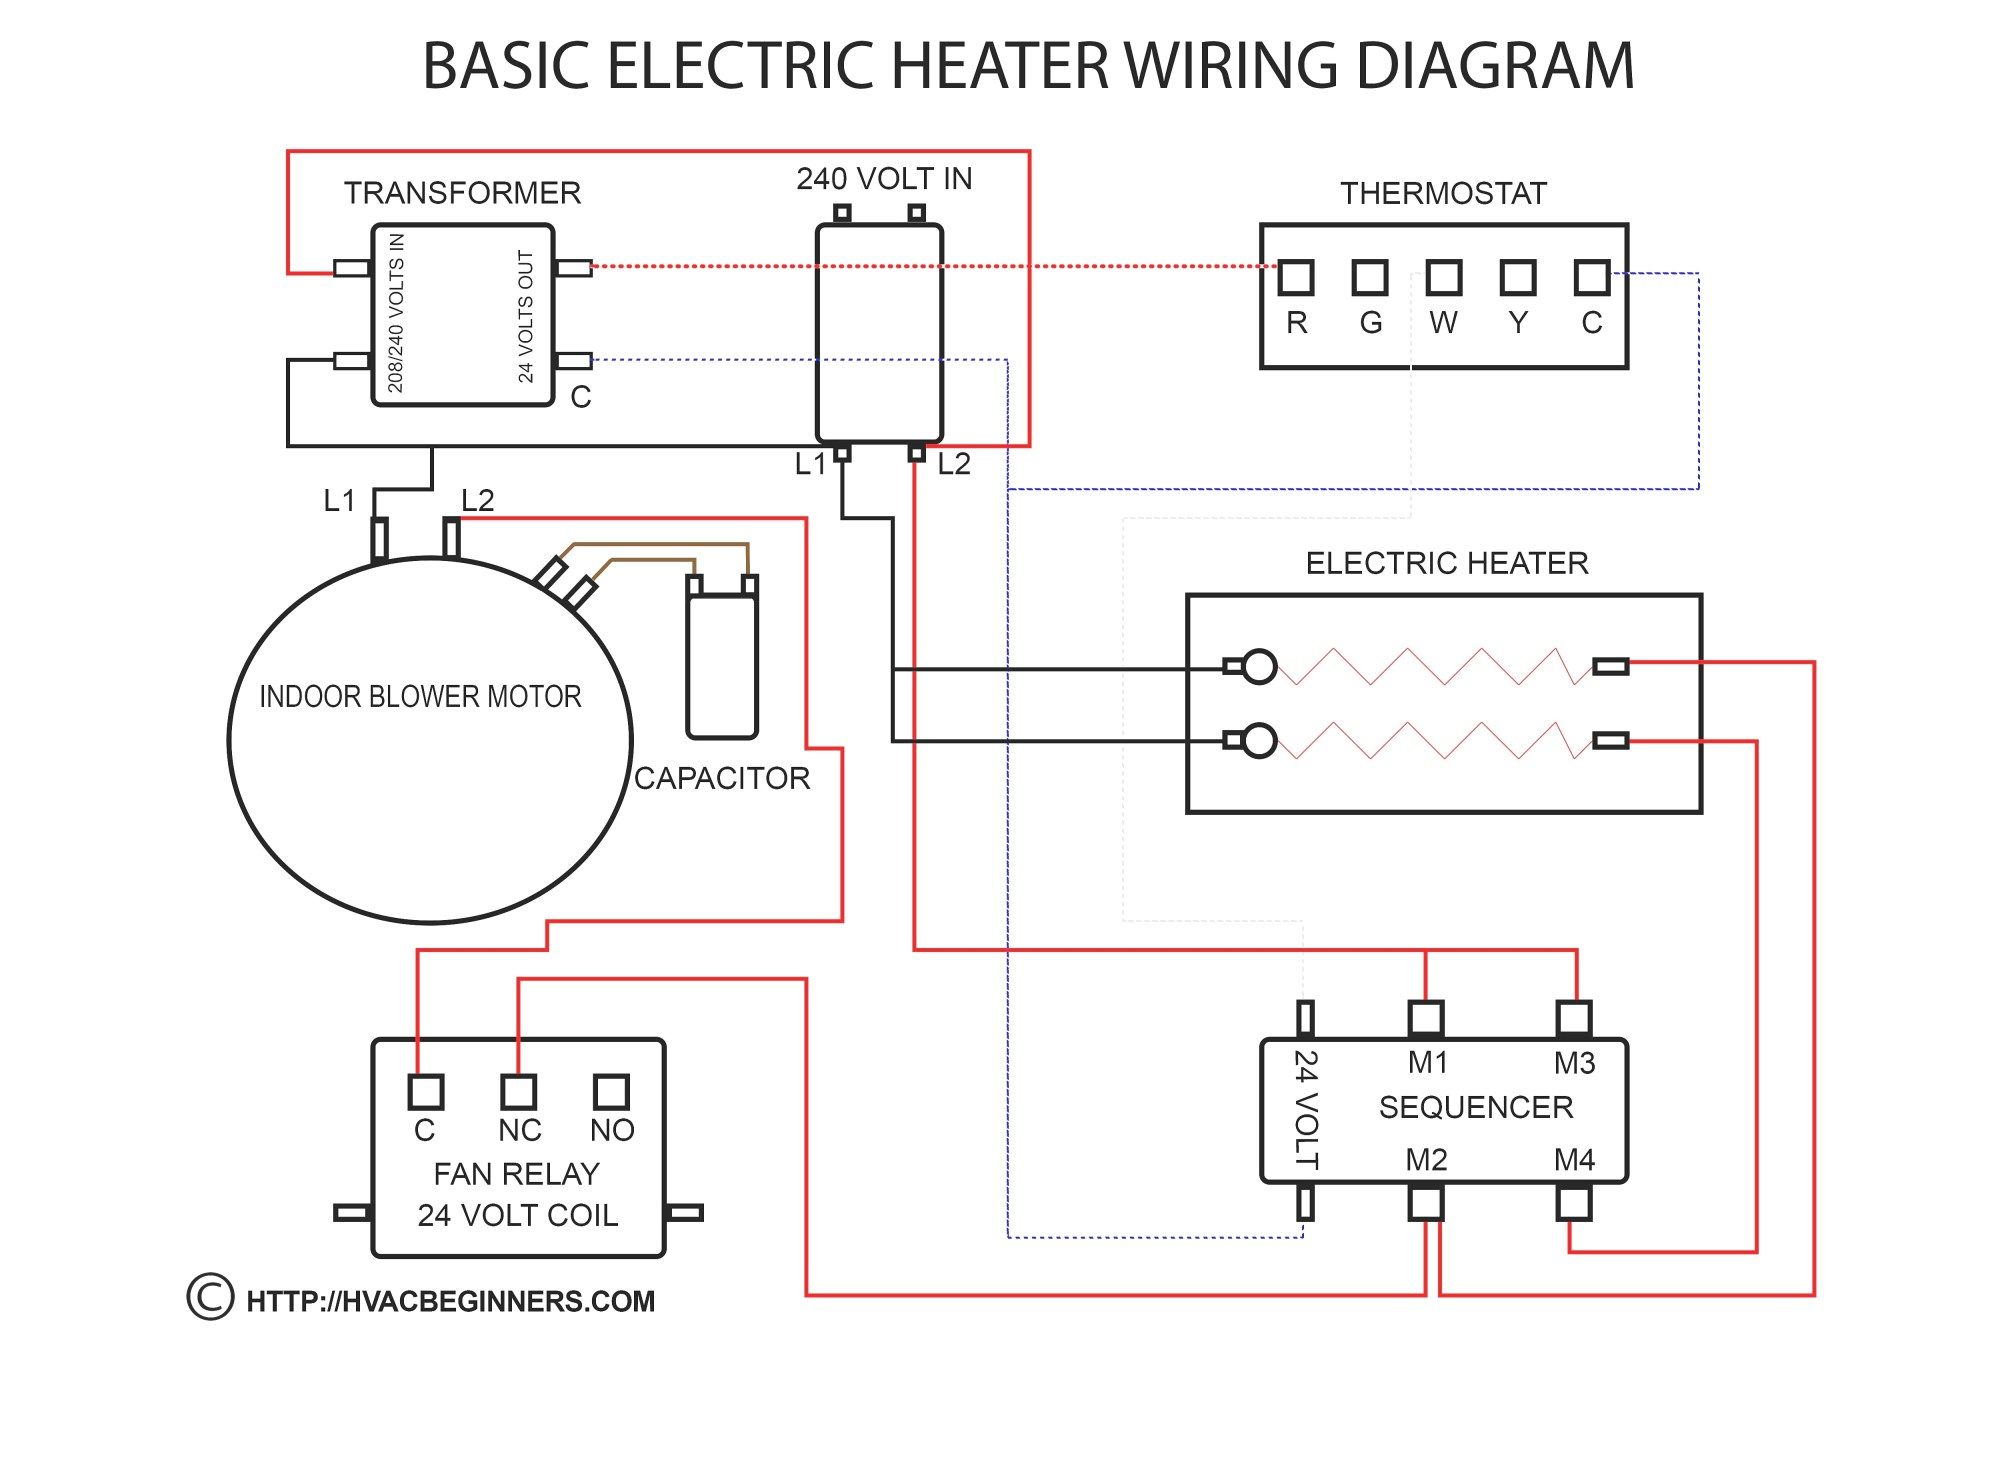 hight resolution of transformer bank schematic wiring diagram basictransformer capacitor wiring diagram wiring diagram centrecircuit breaker panel moreover 24